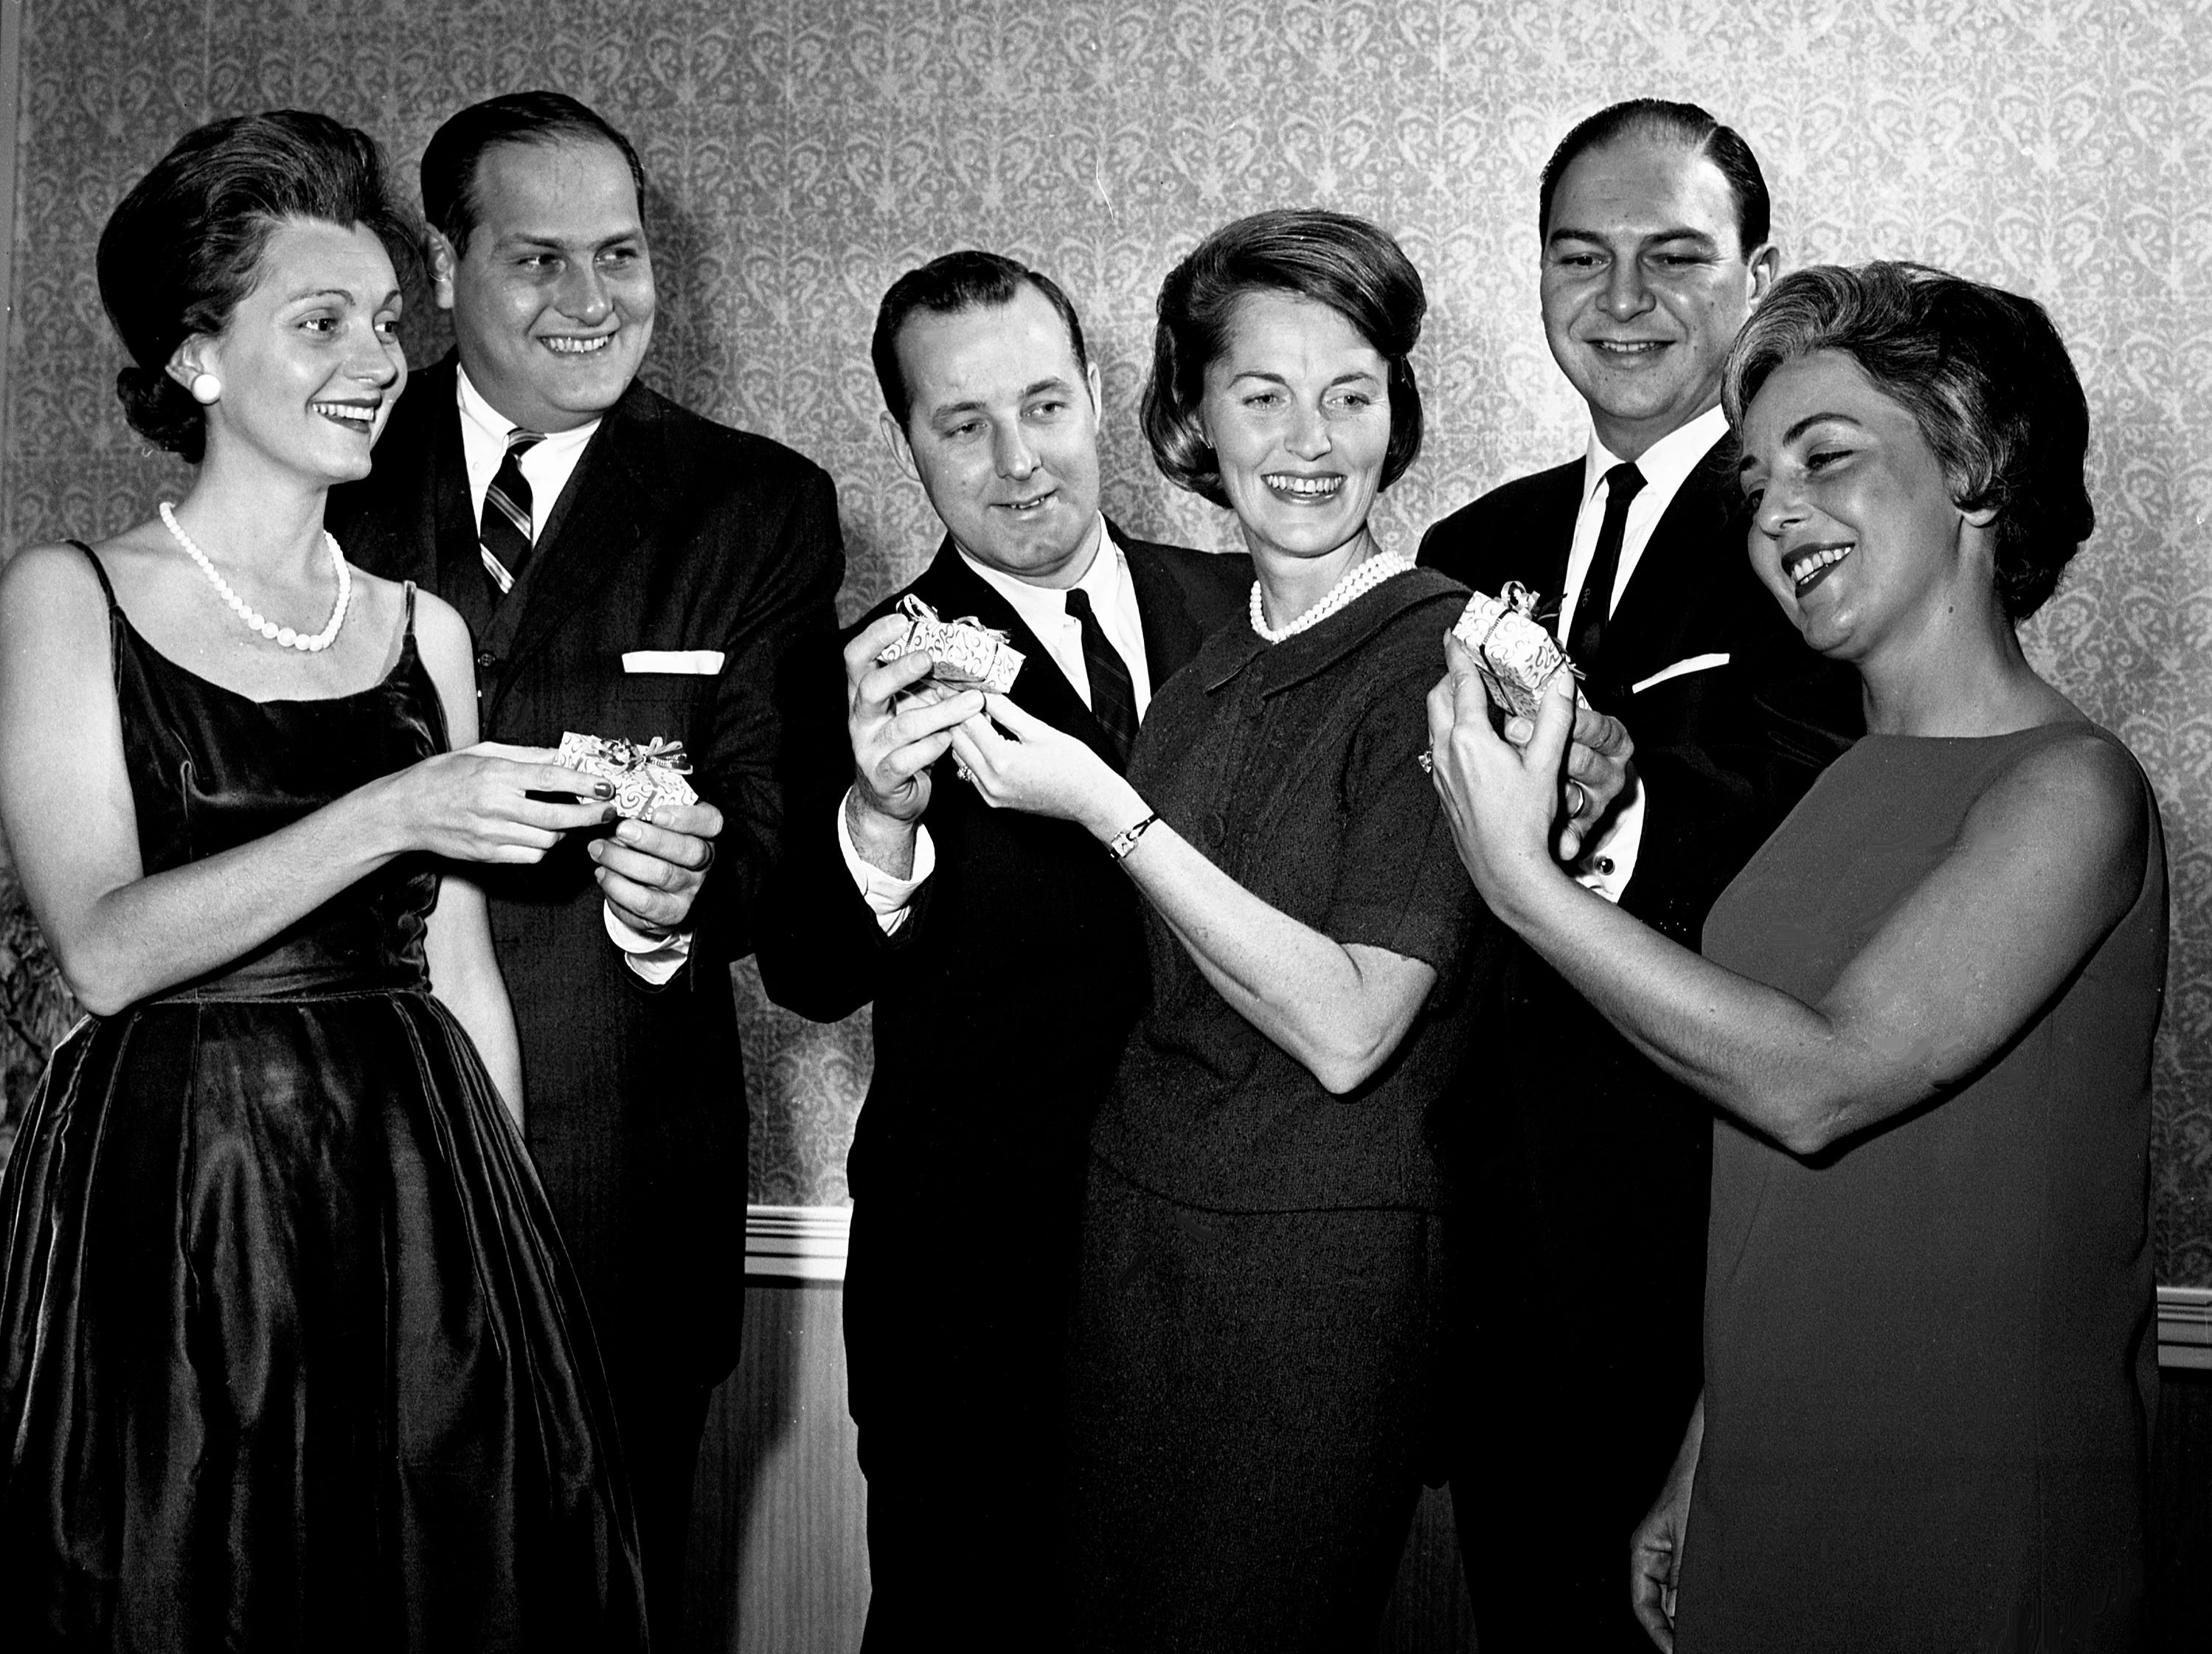 Richland Country Club is the scene of the Lions Club annual Valentine Party on Feb. 13, 1964. Favors are being presented to all the ladies at the party, which includes Mrs. and Mr. James Bennett, left, Mr. and Mrs. Charles A. Daugherty and Mr. and Mrs. Norman Lipman.